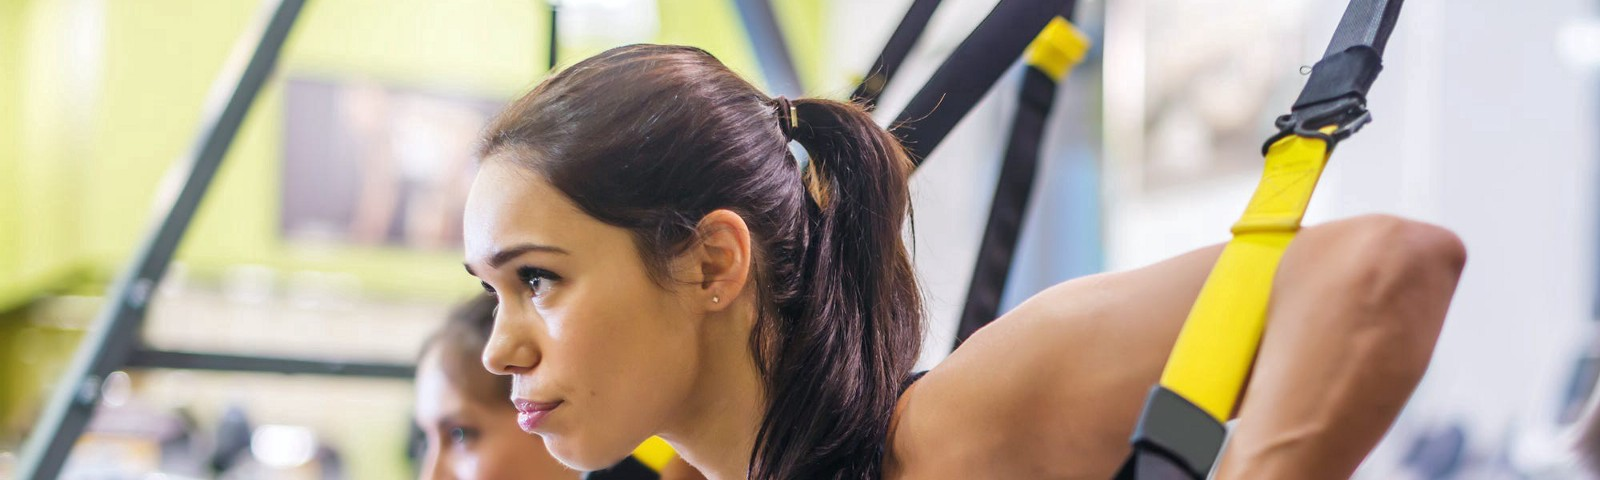 A person working out in a gym.